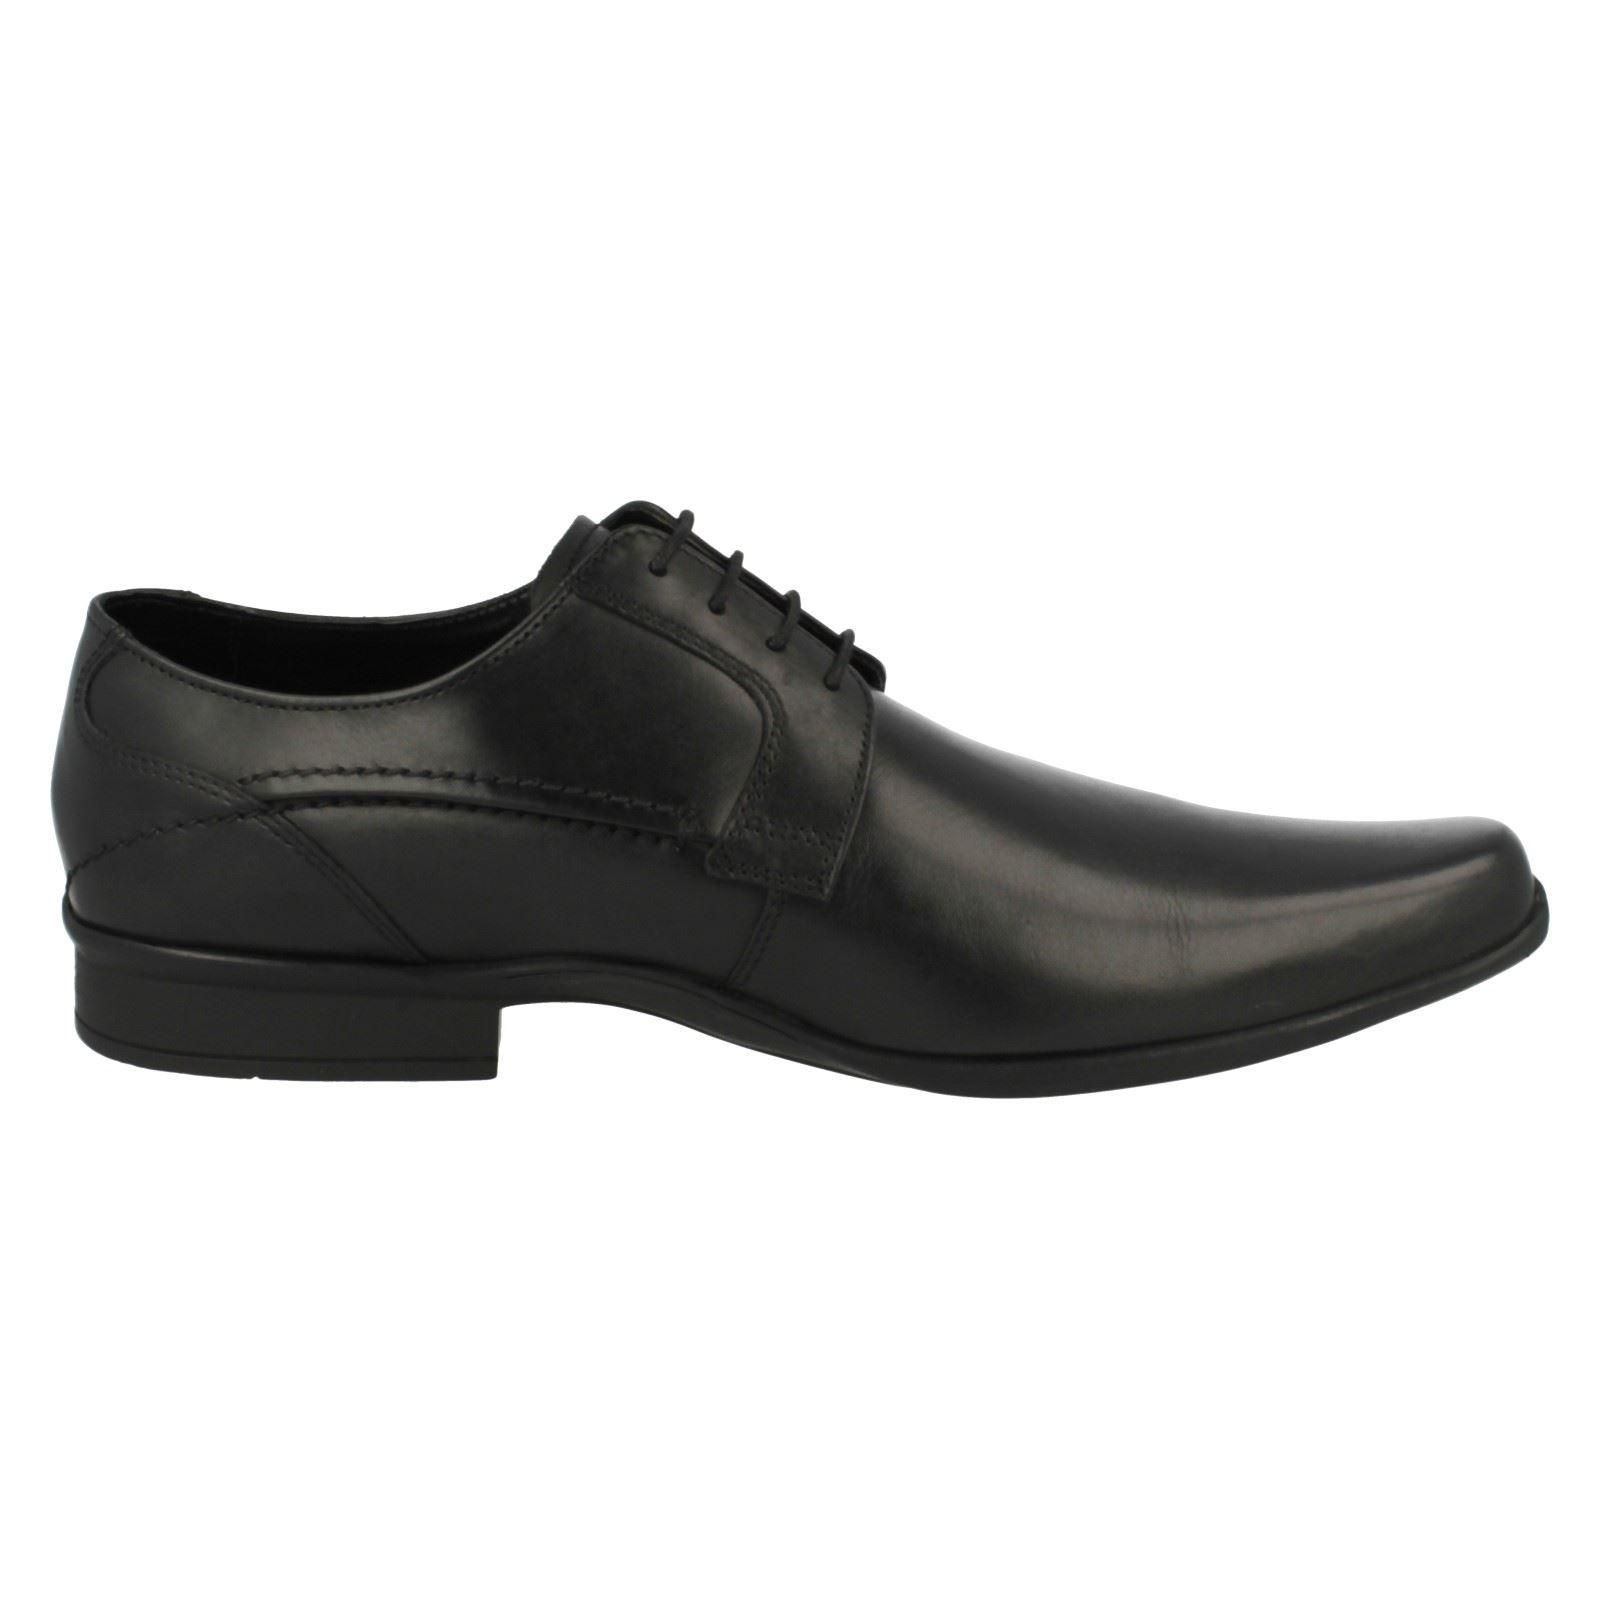 Mens-Clarks-Formal-Lace-Up-Shoes-Ascar-Walk thumbnail 7